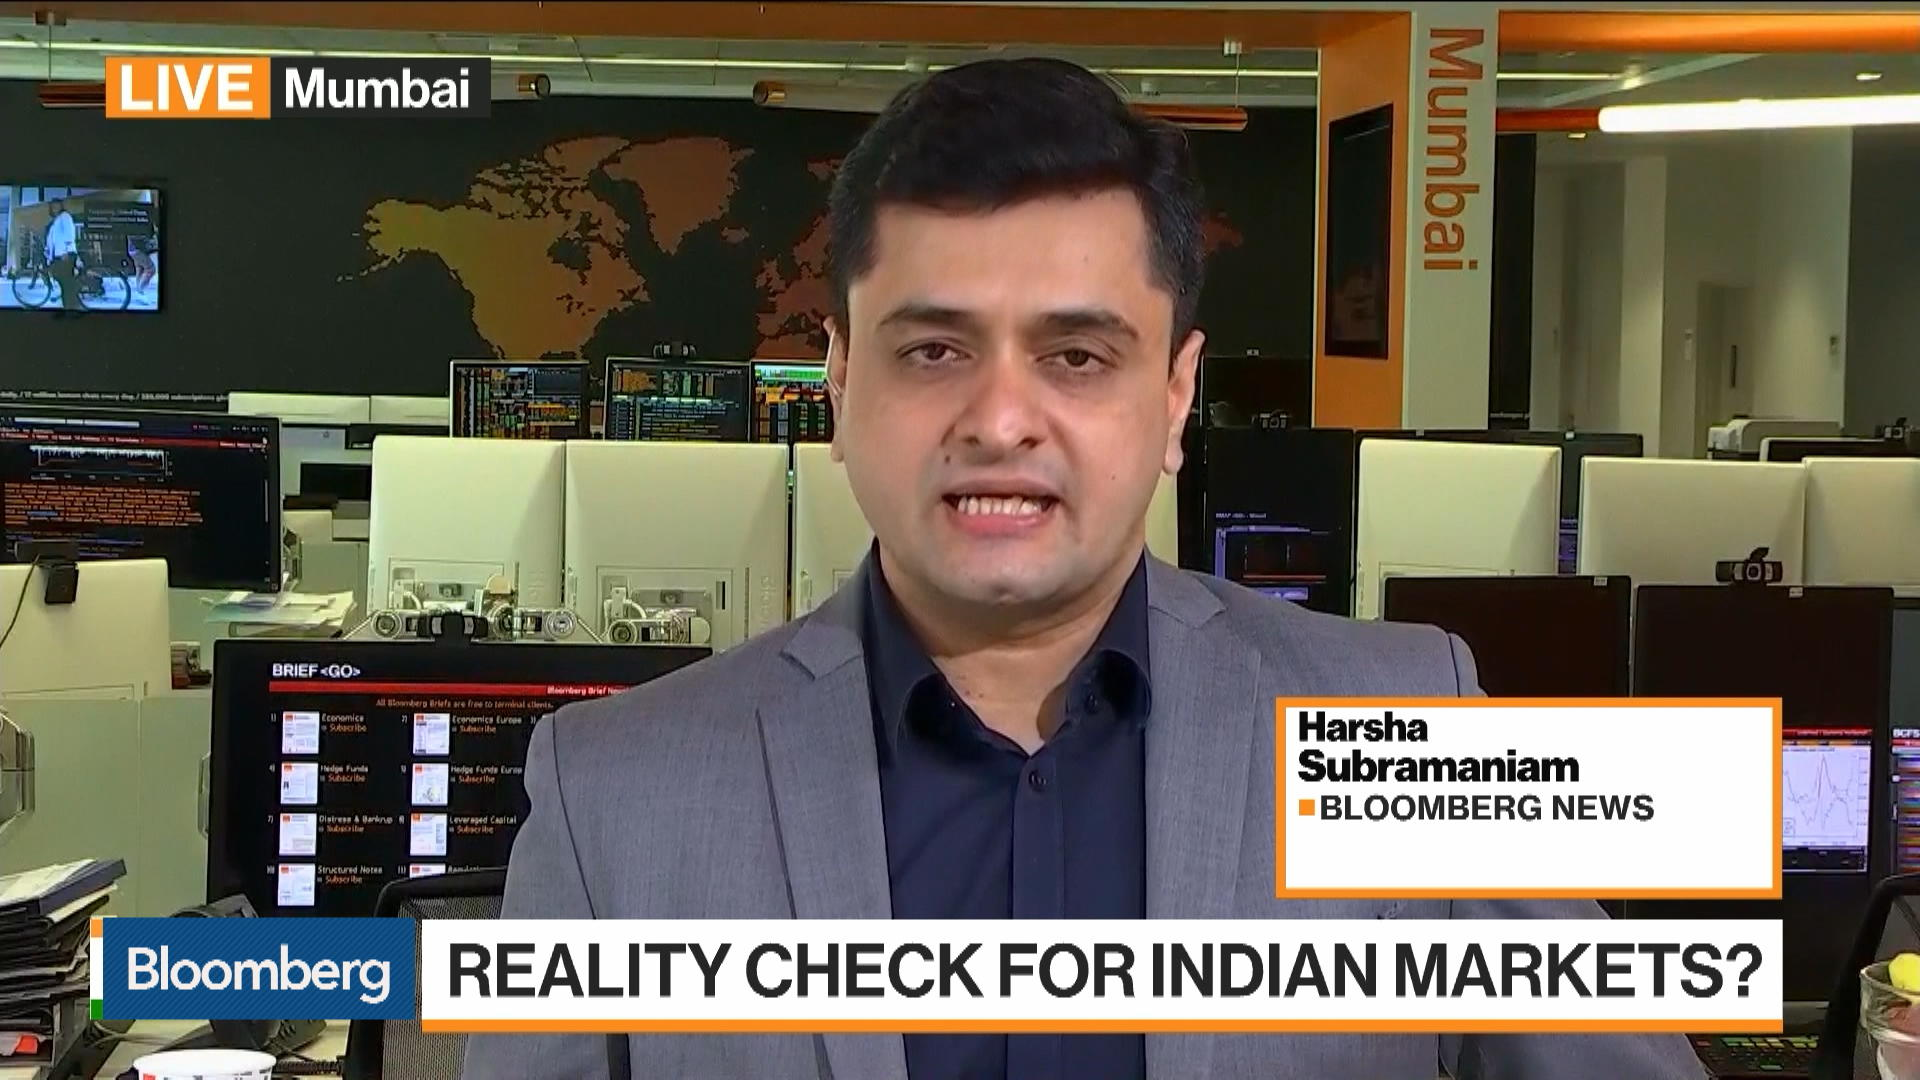 Reality Check for Indian Markets?